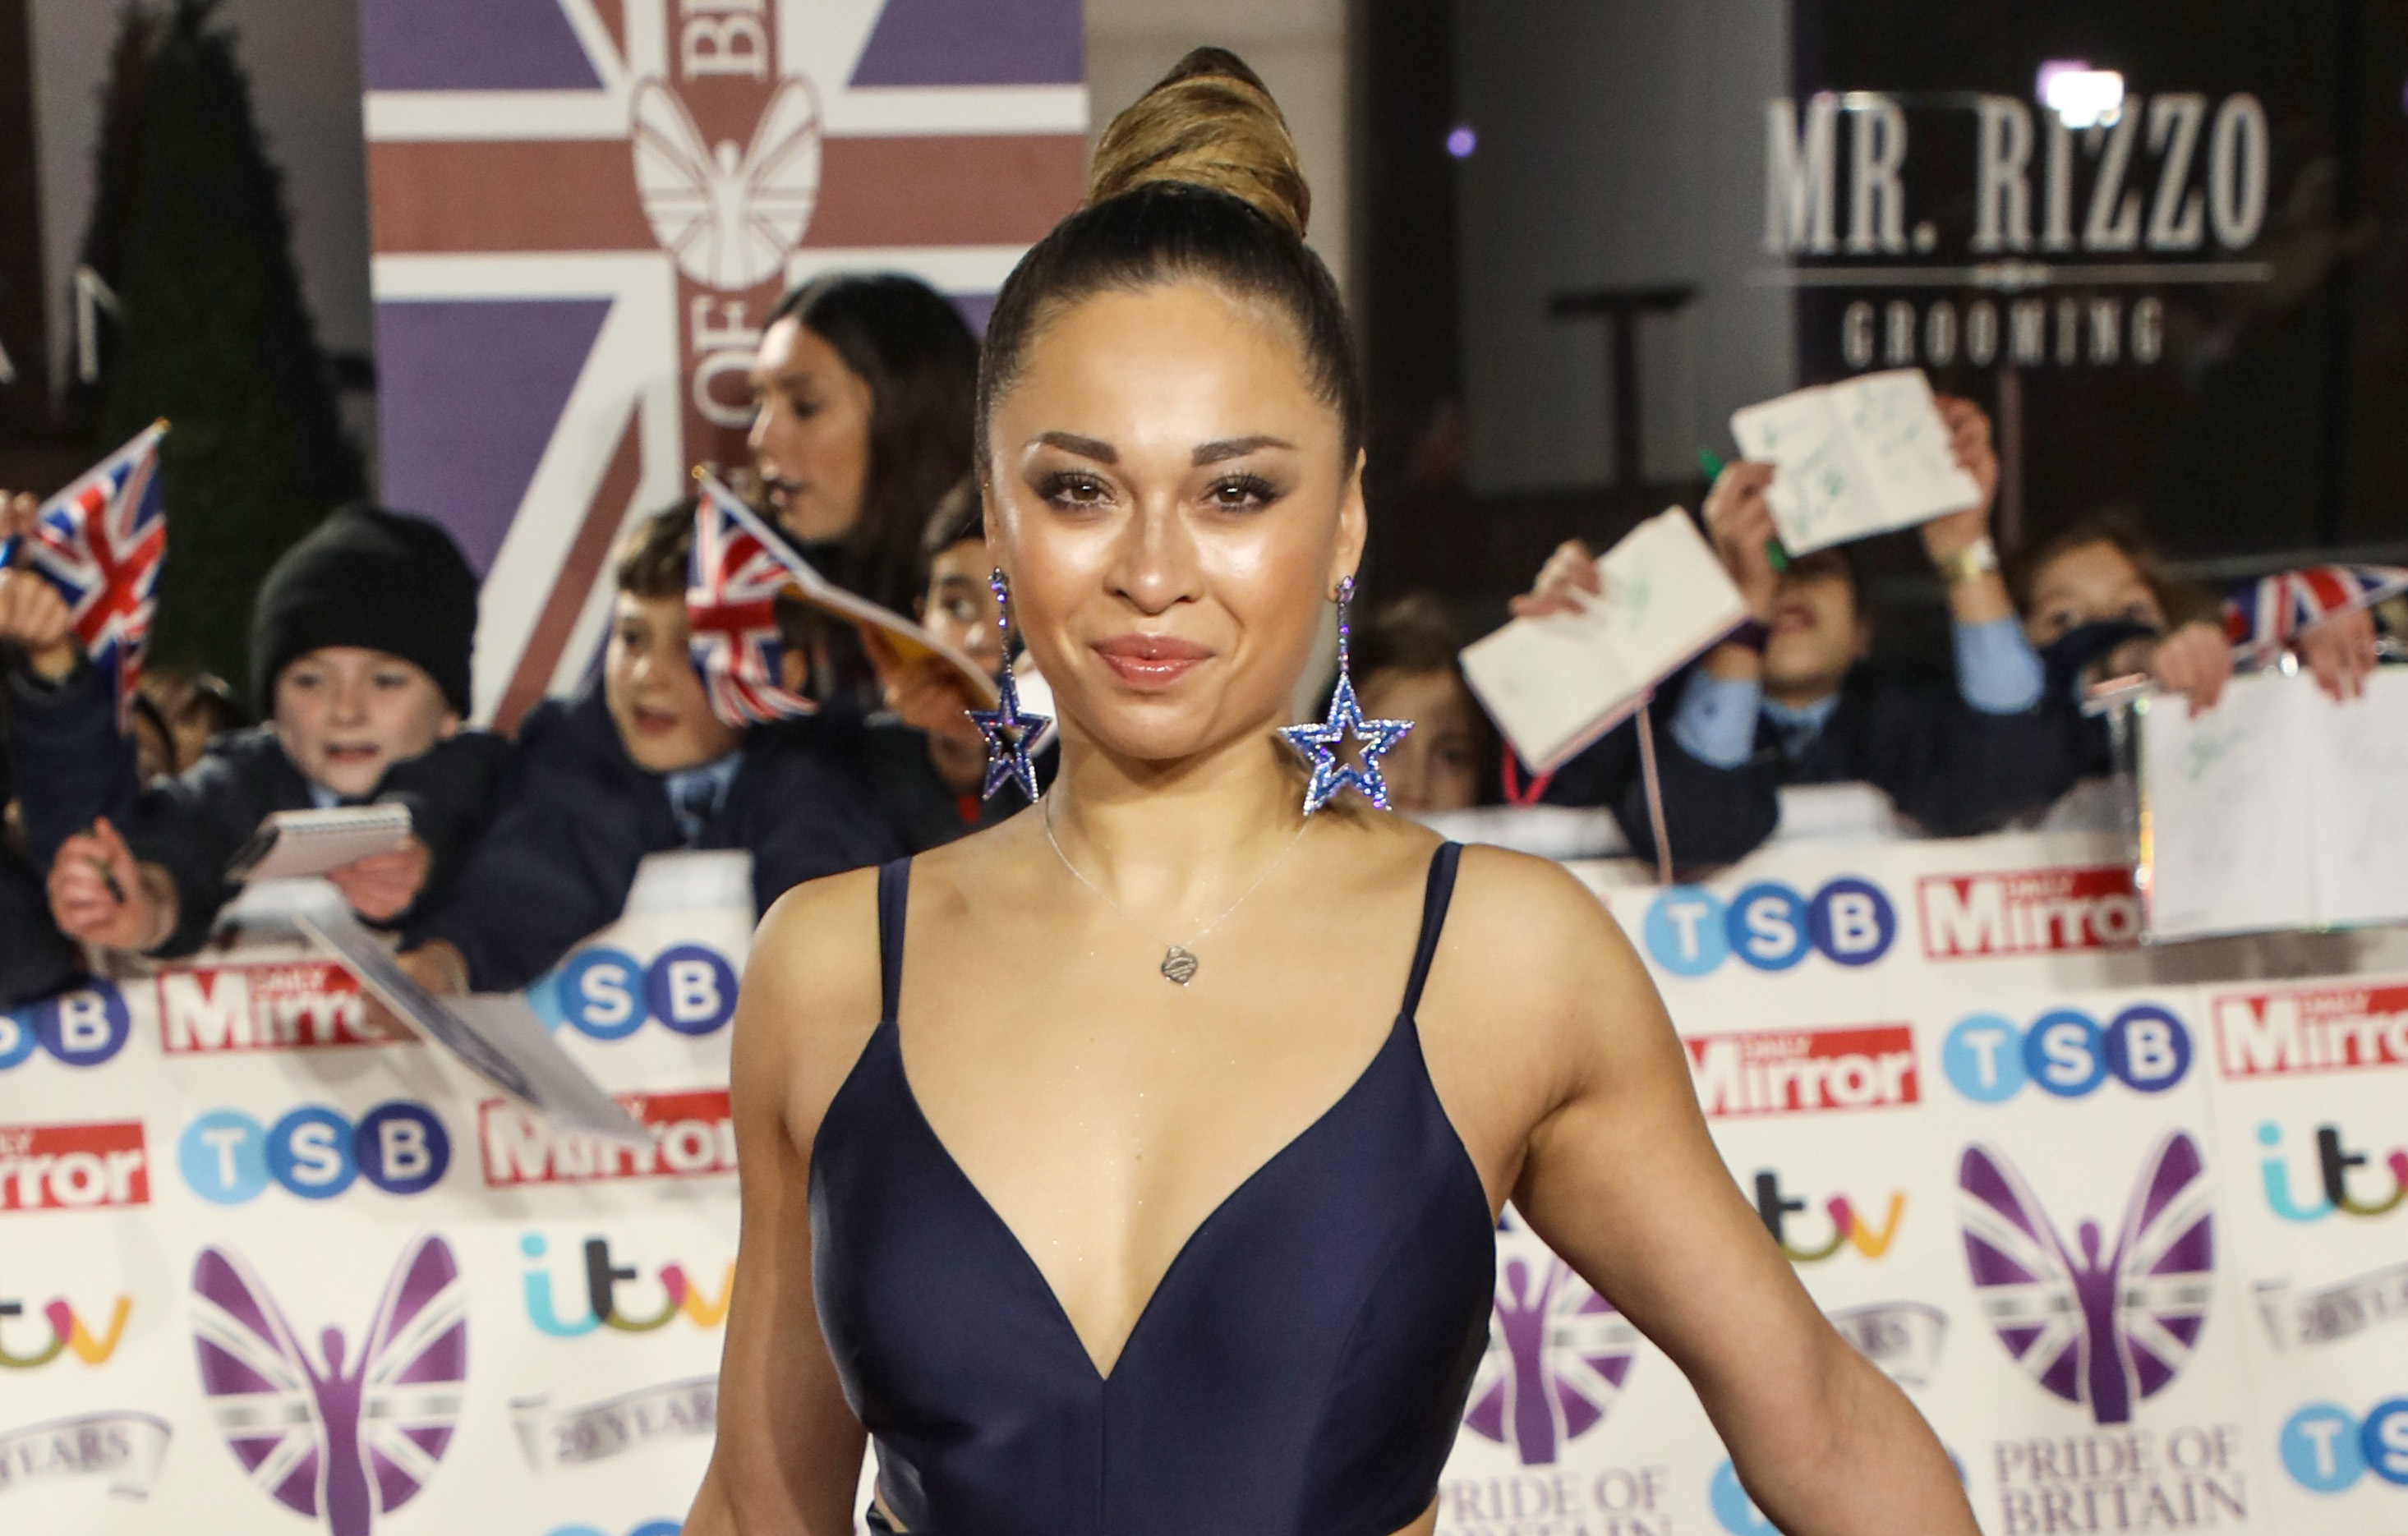 Strictly's Katya Jones 'forced to miss training due to neck injury'